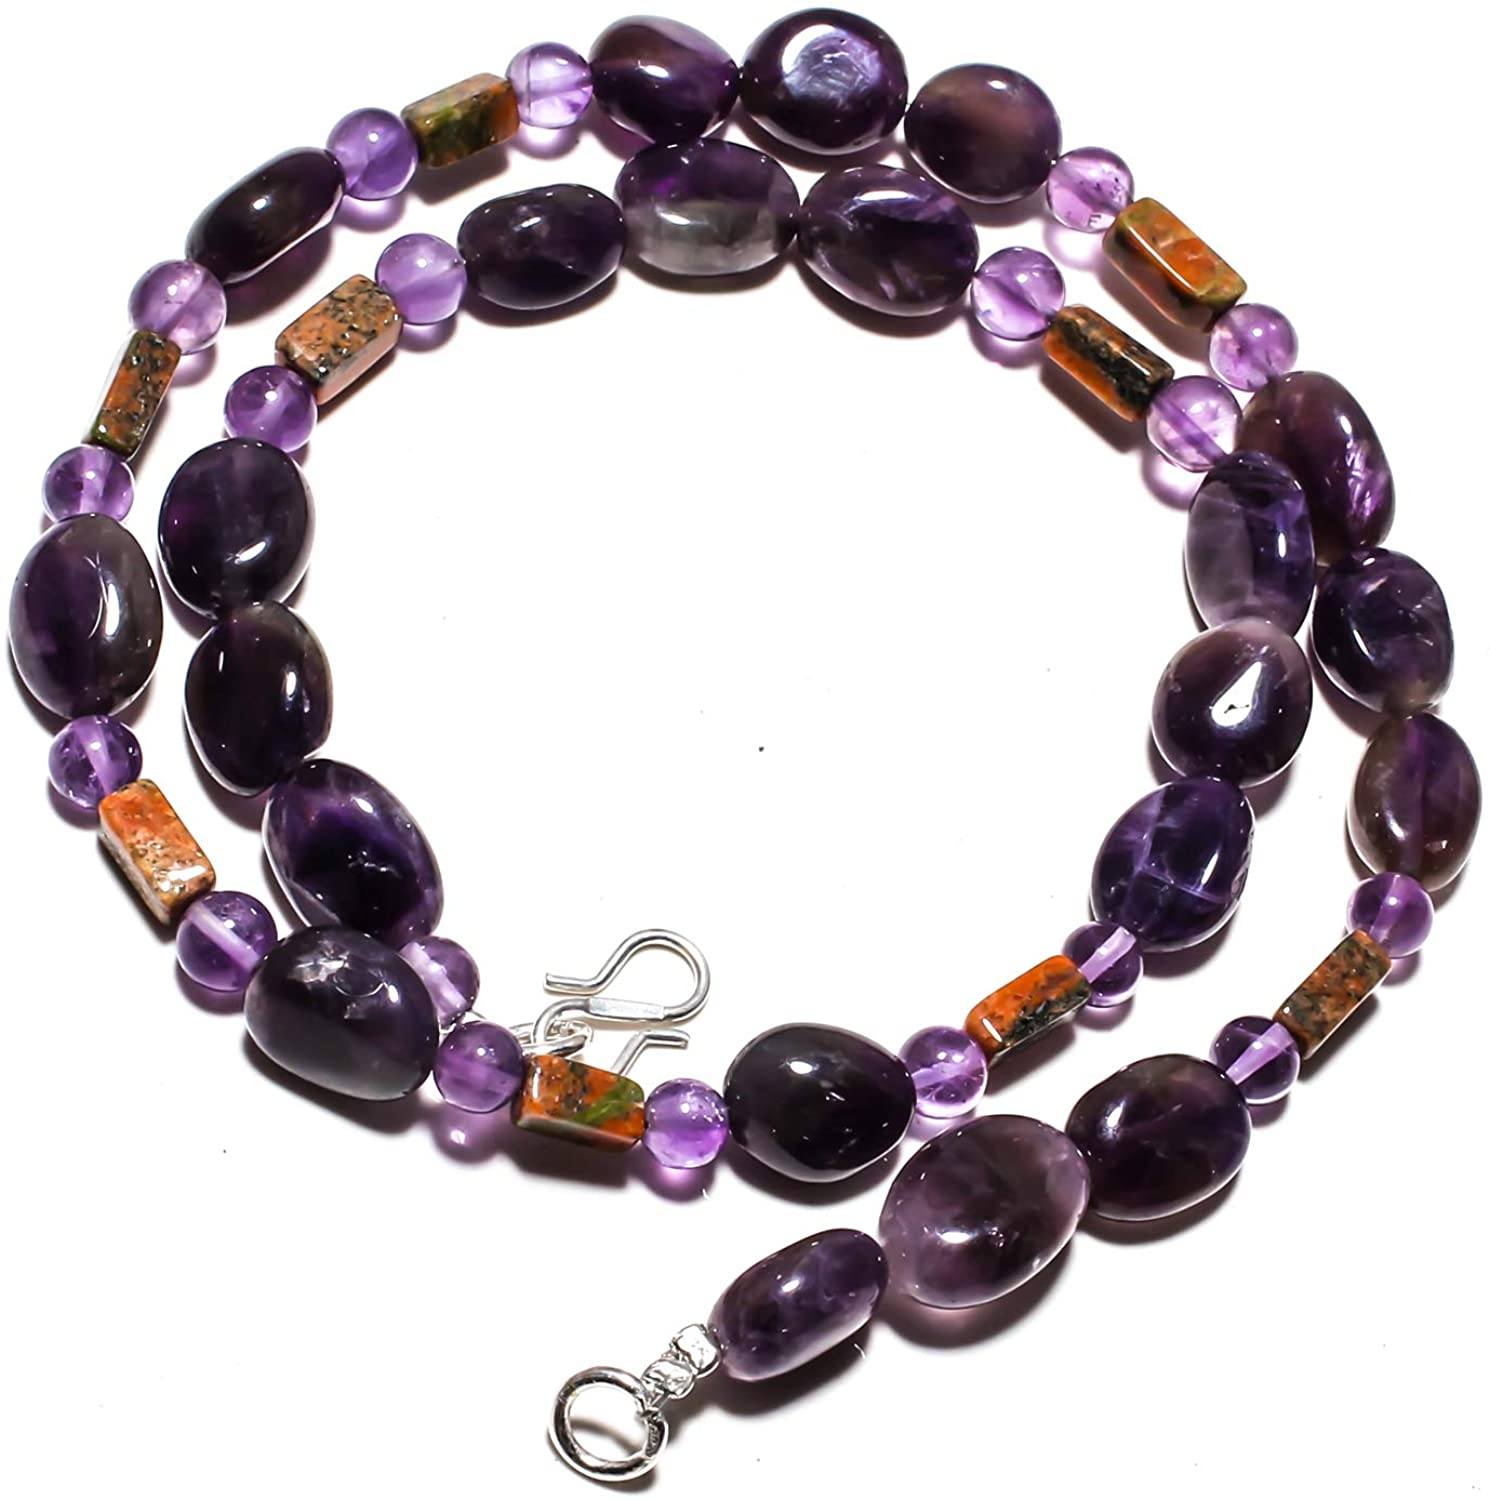 kanta incorporation Amethyst Sage Natural Gemstone Beads Jewelry Necklace 17